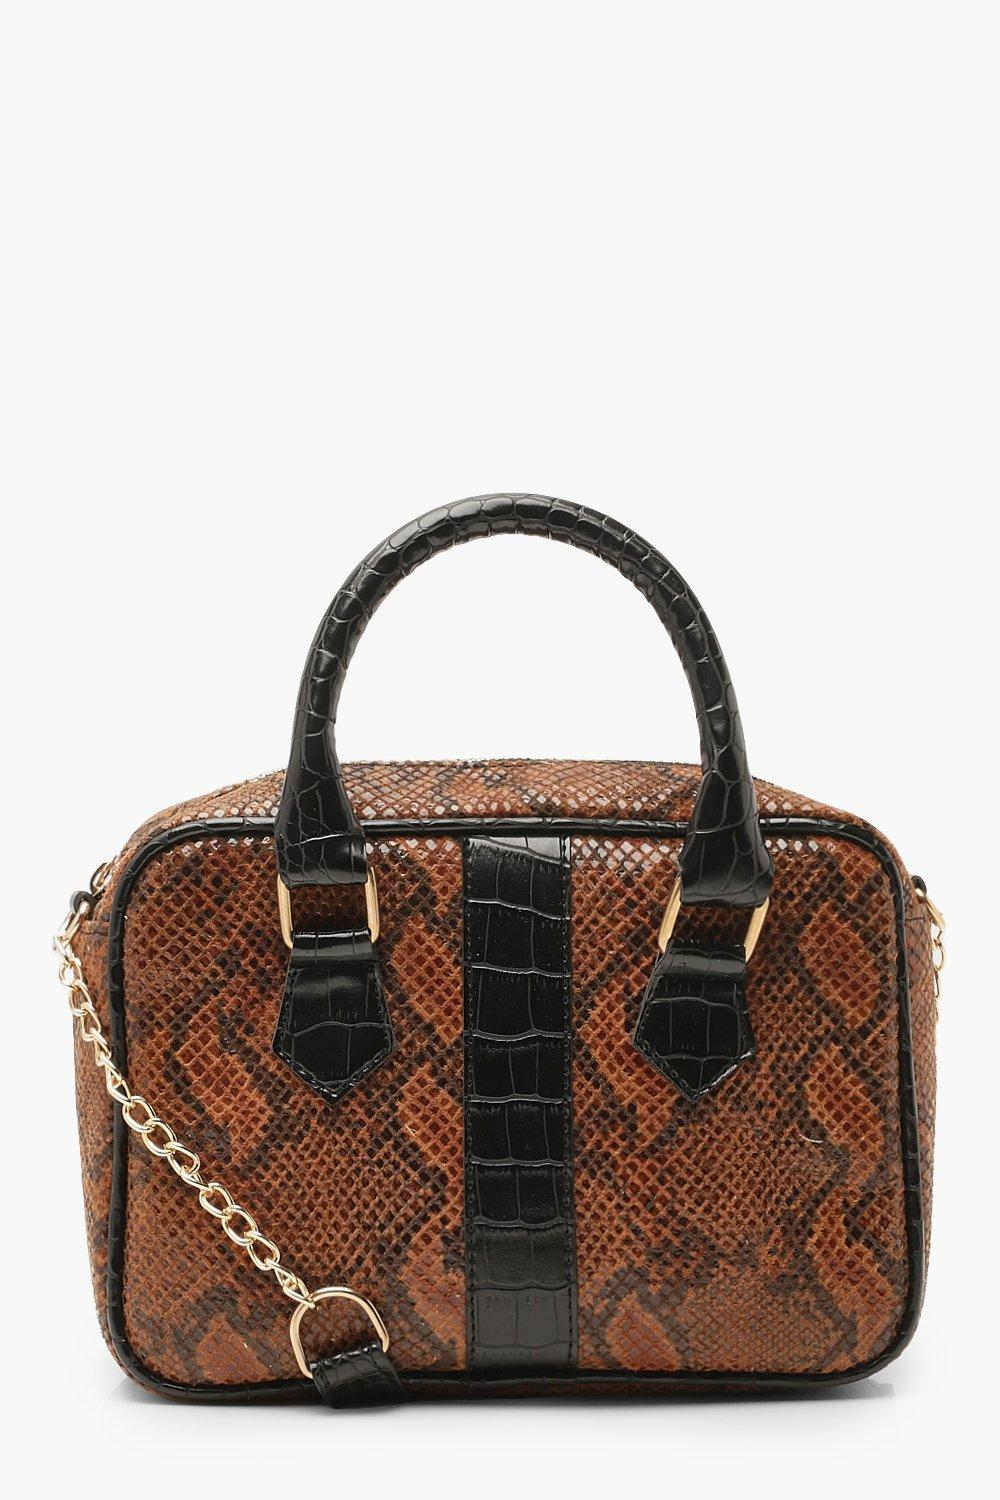 Boohoo Faux Snake Bowling Bag in Brown - Lyst 86a931cfa91b5